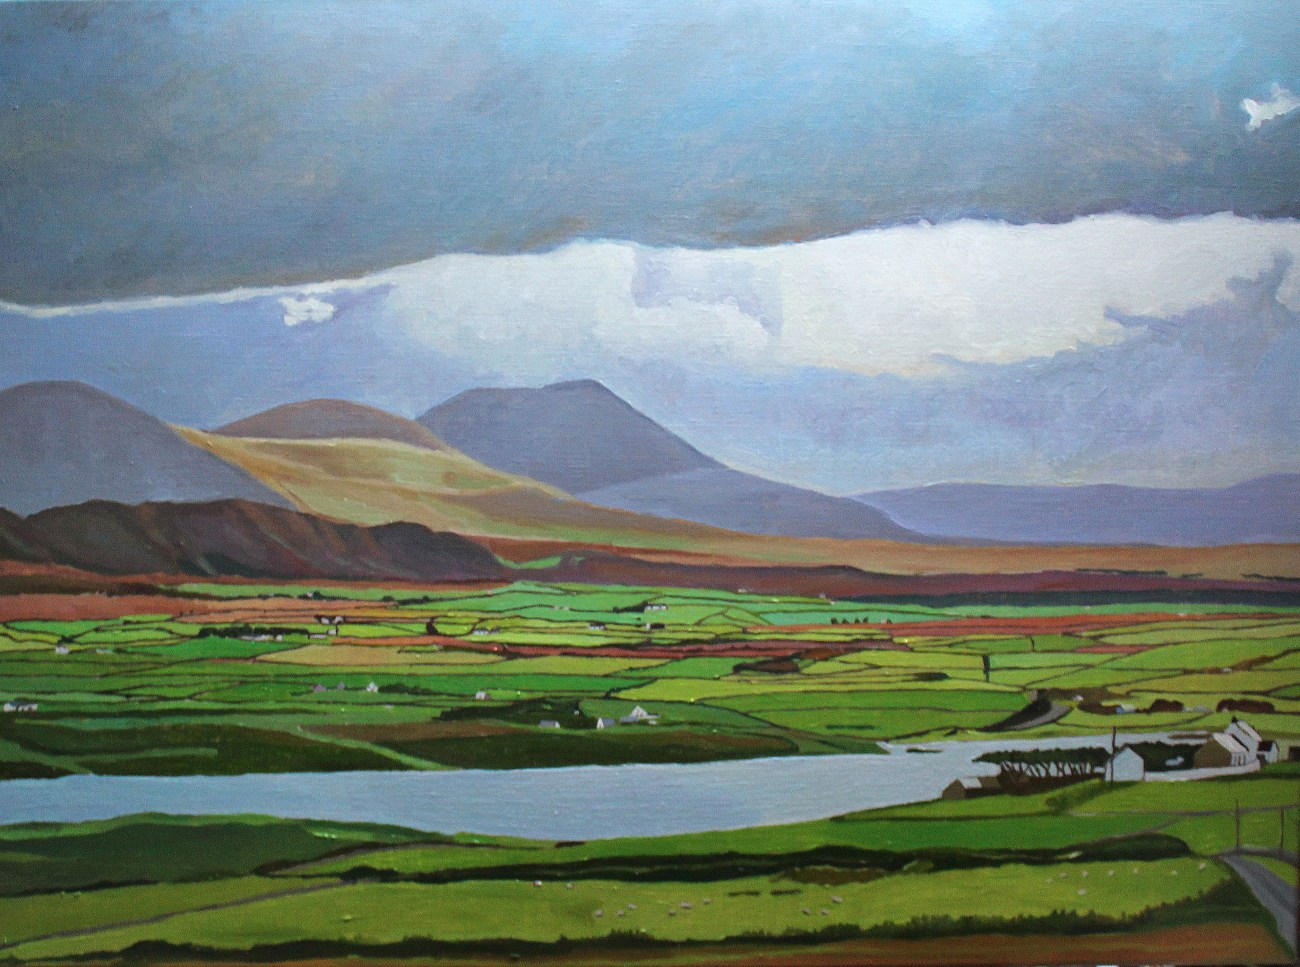 Oil painting of Donegal landscape, Ireland